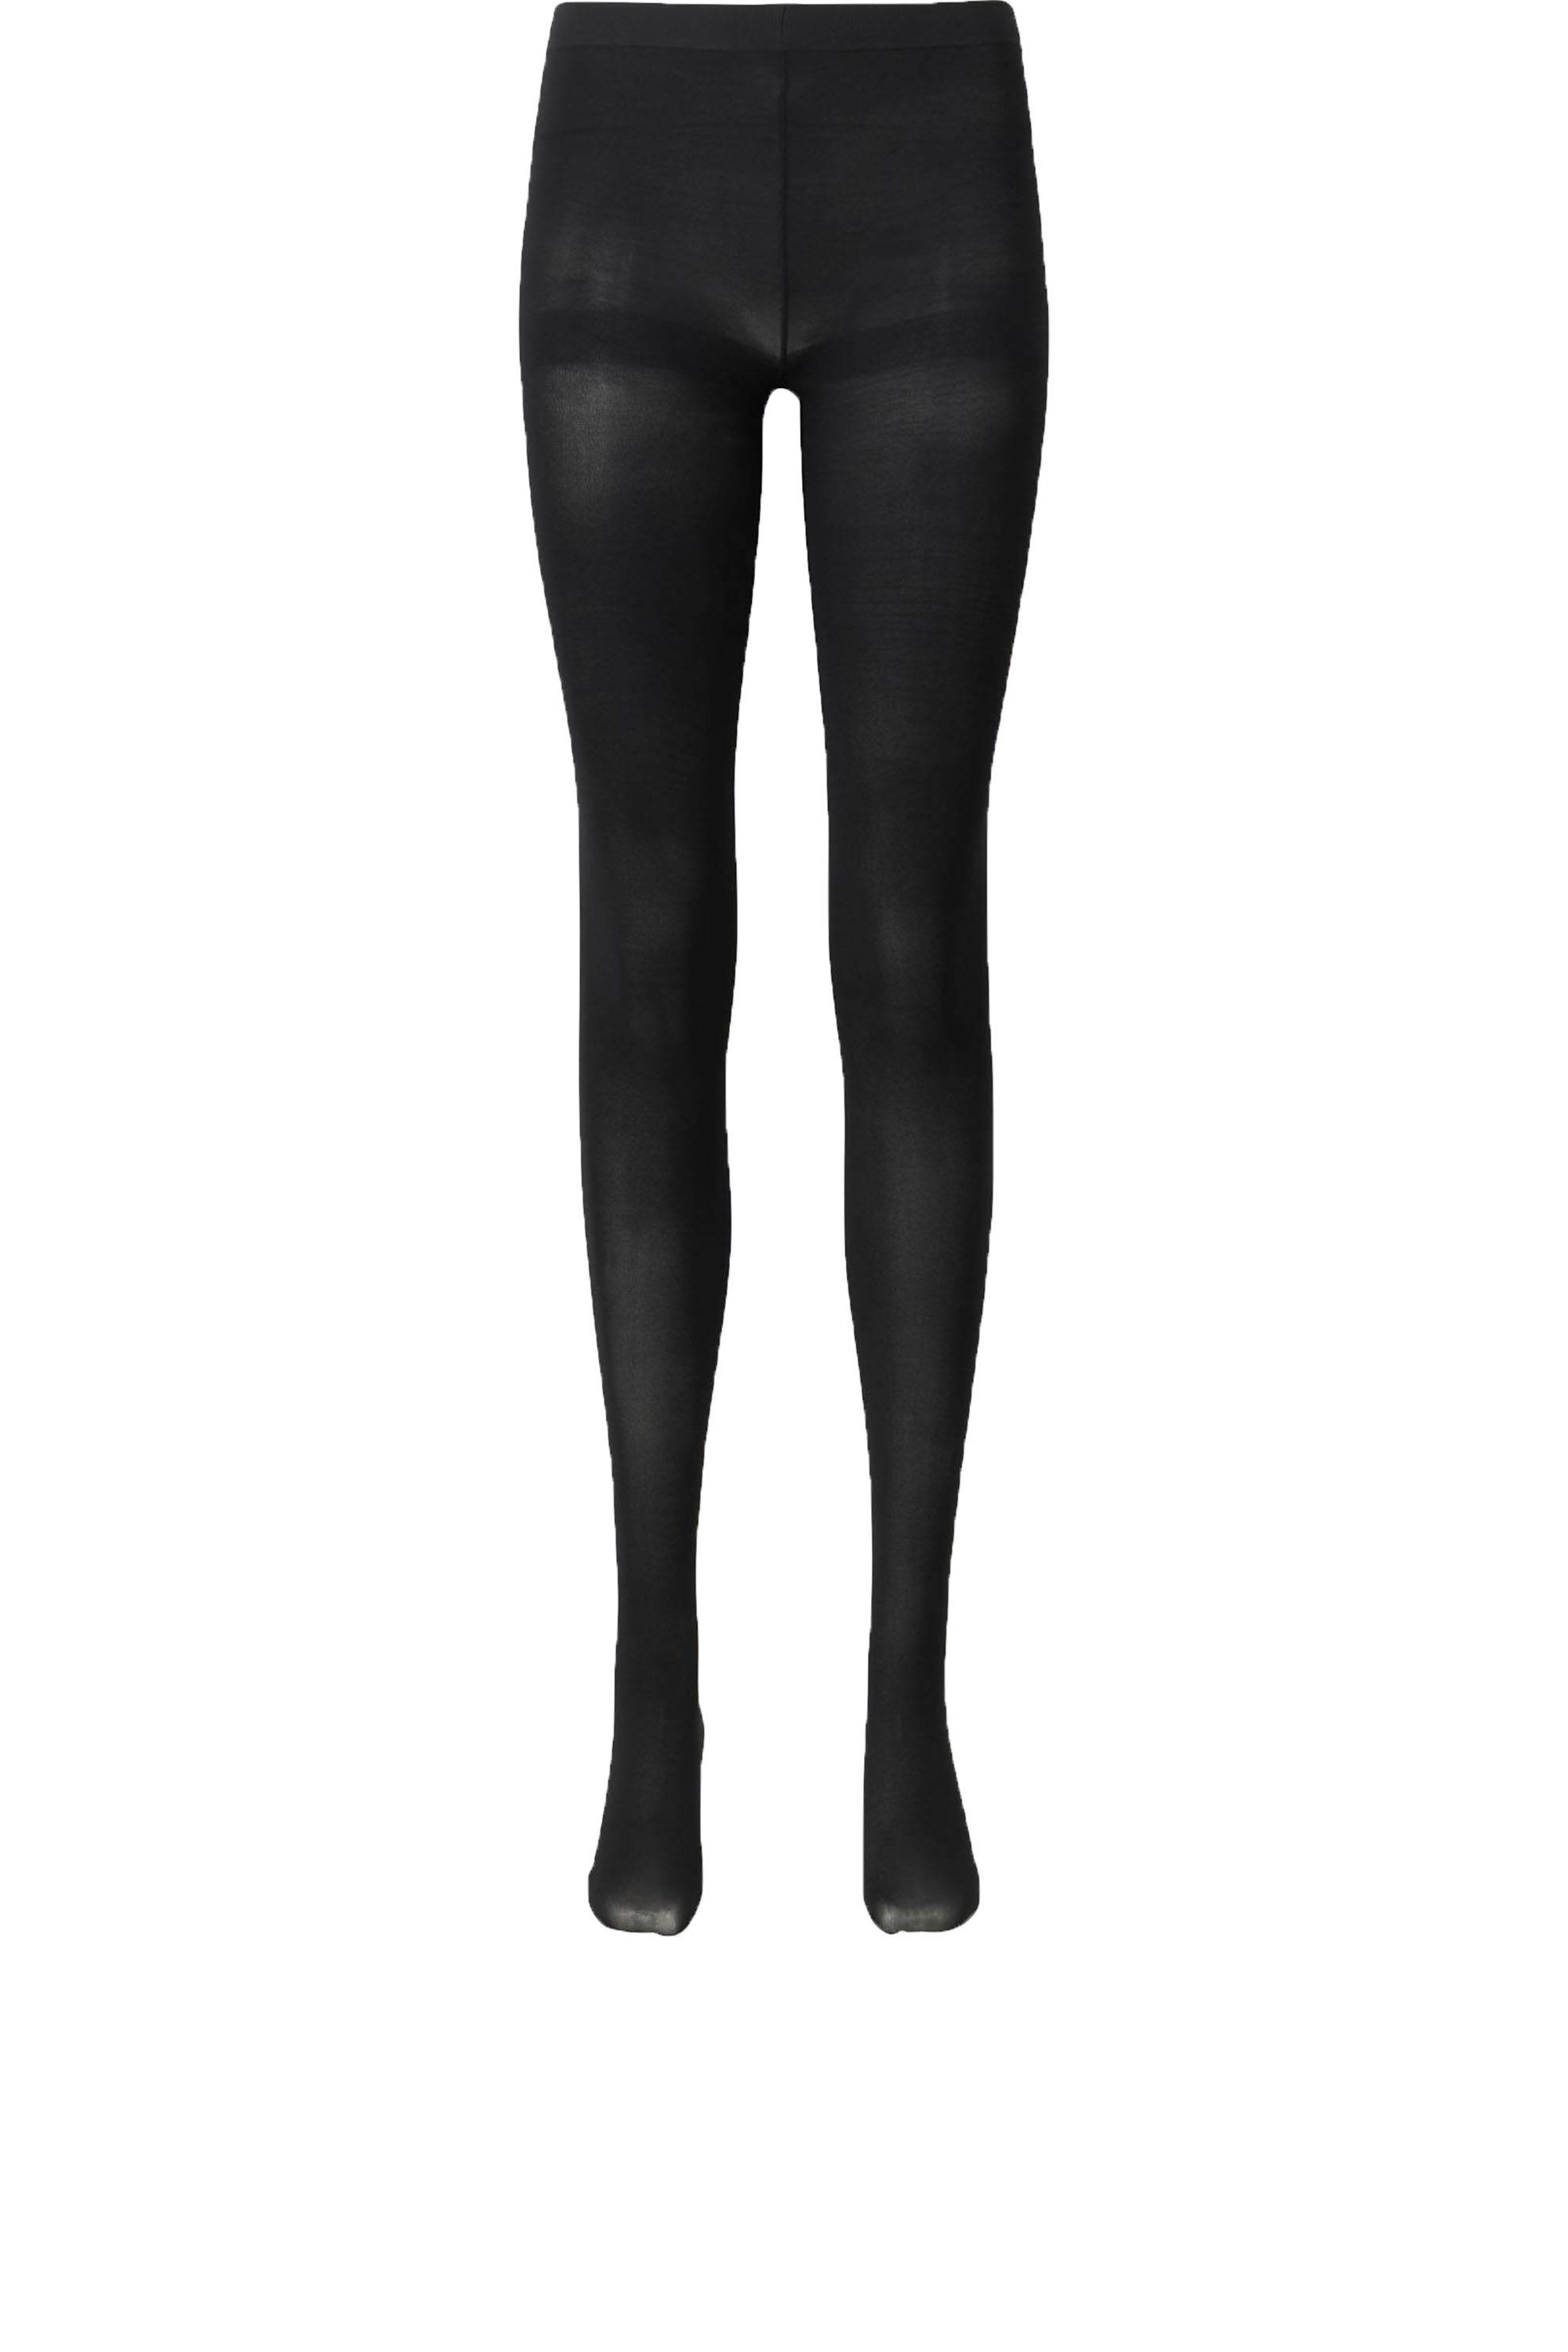 cc528cb92f518 Best Black Tights for Winter and Cold Weather